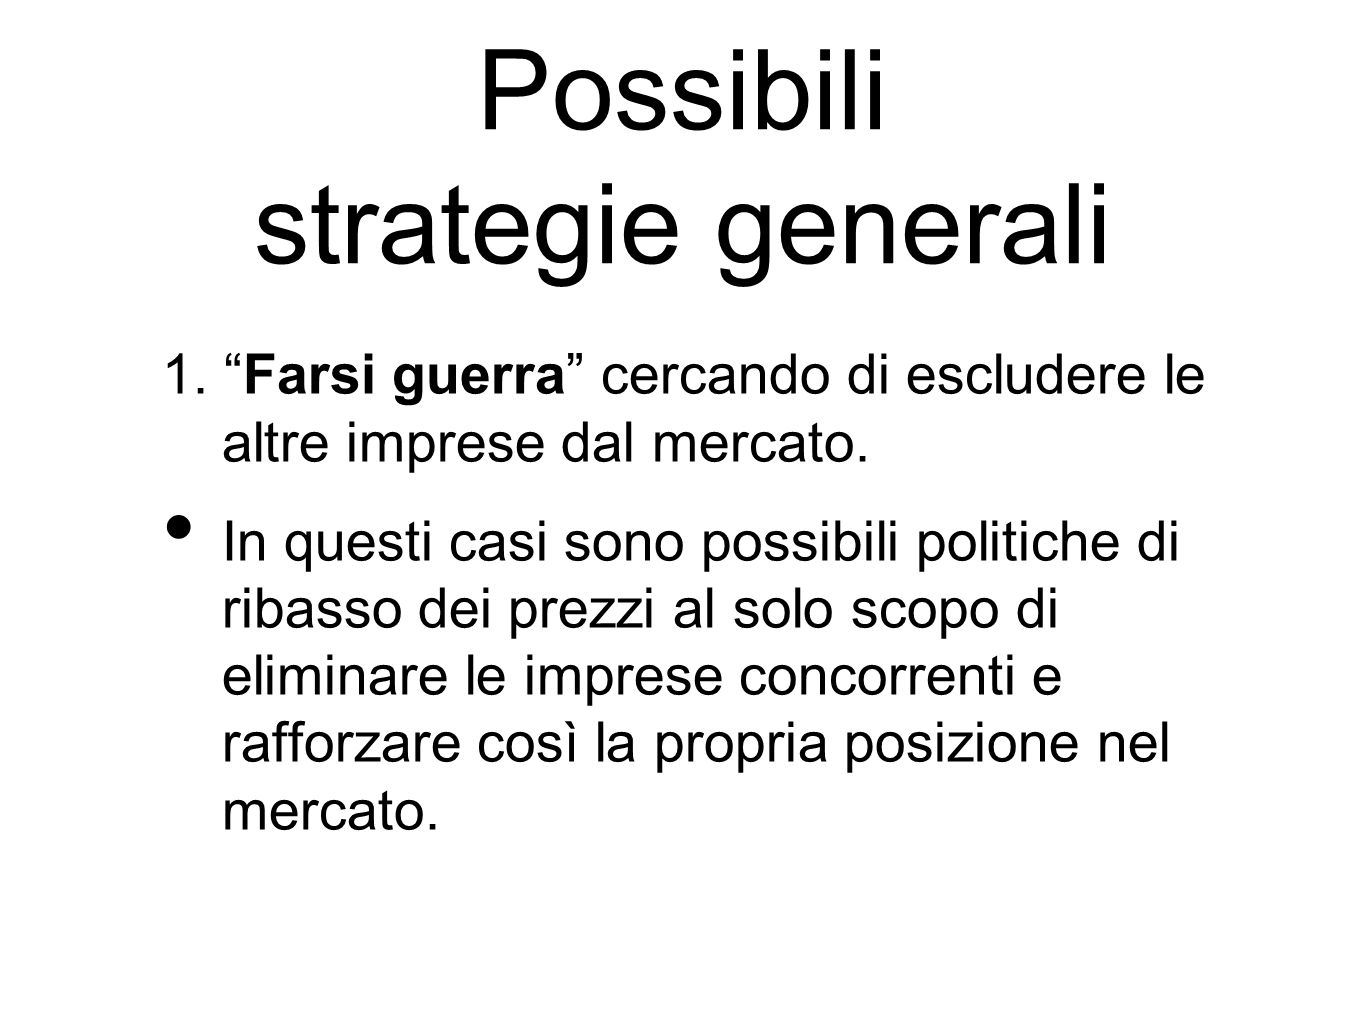 Possibili strategie generali